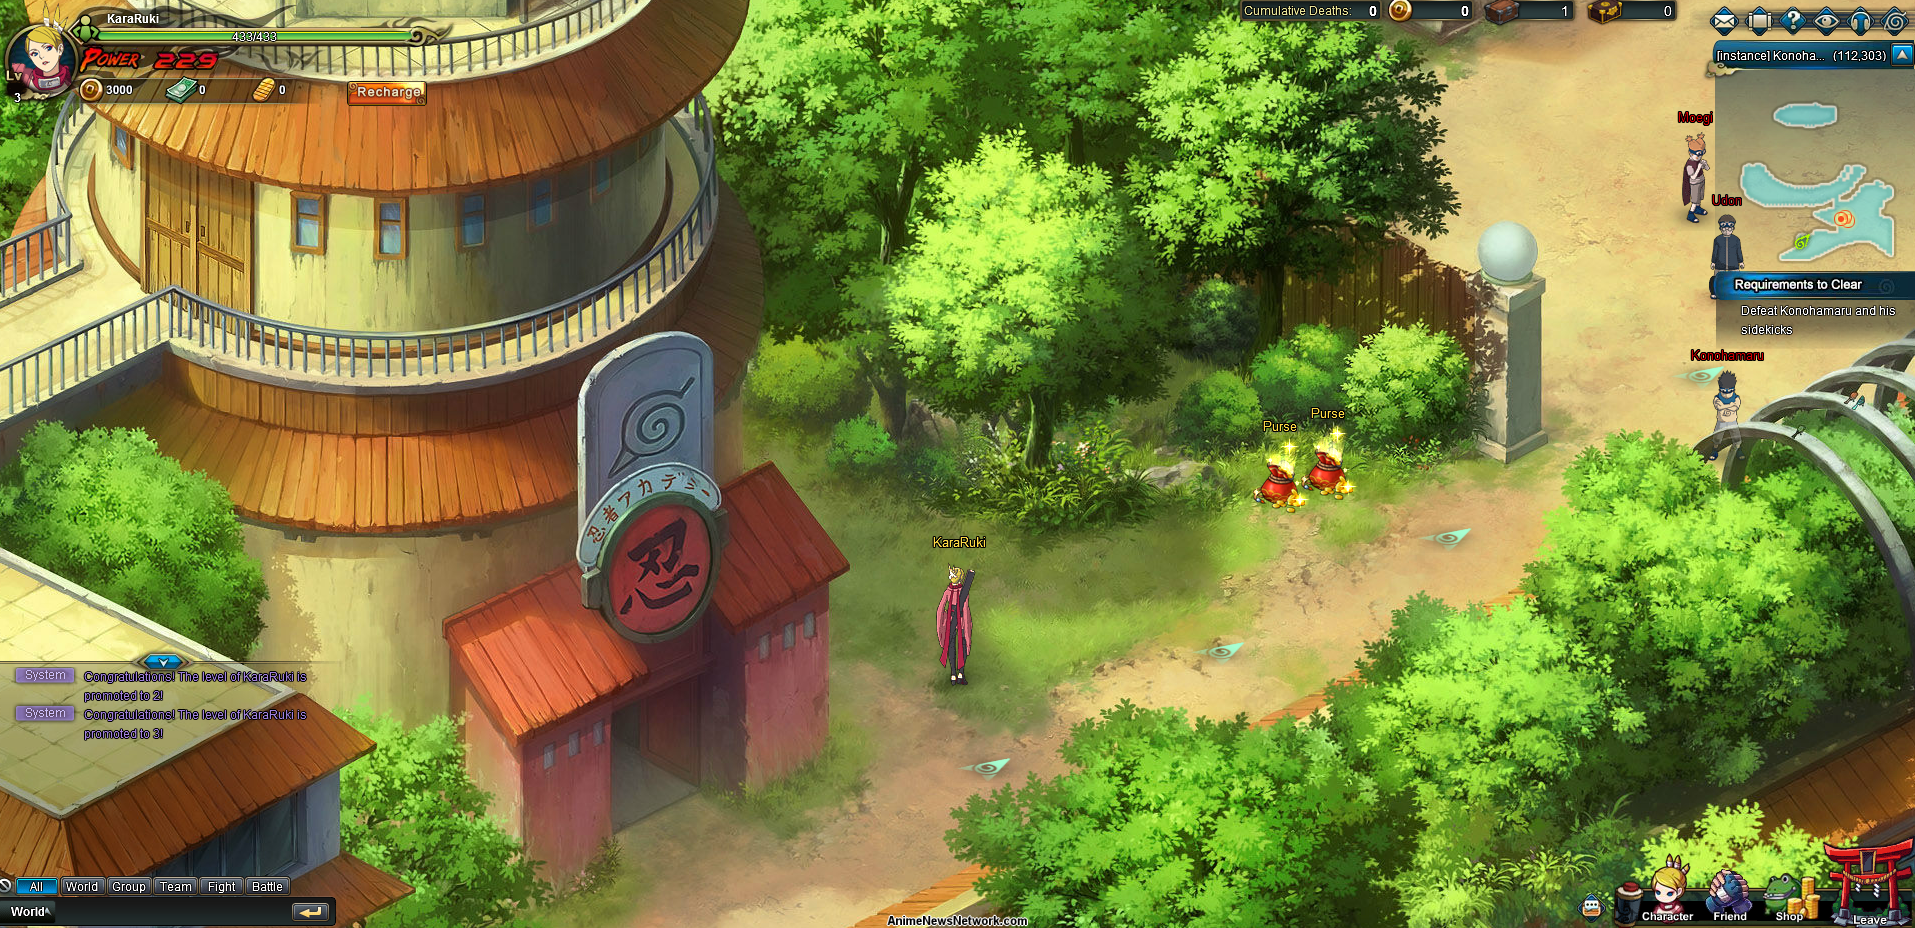 Naruto Online PC MMORPG Launches in the West on July 20 - News